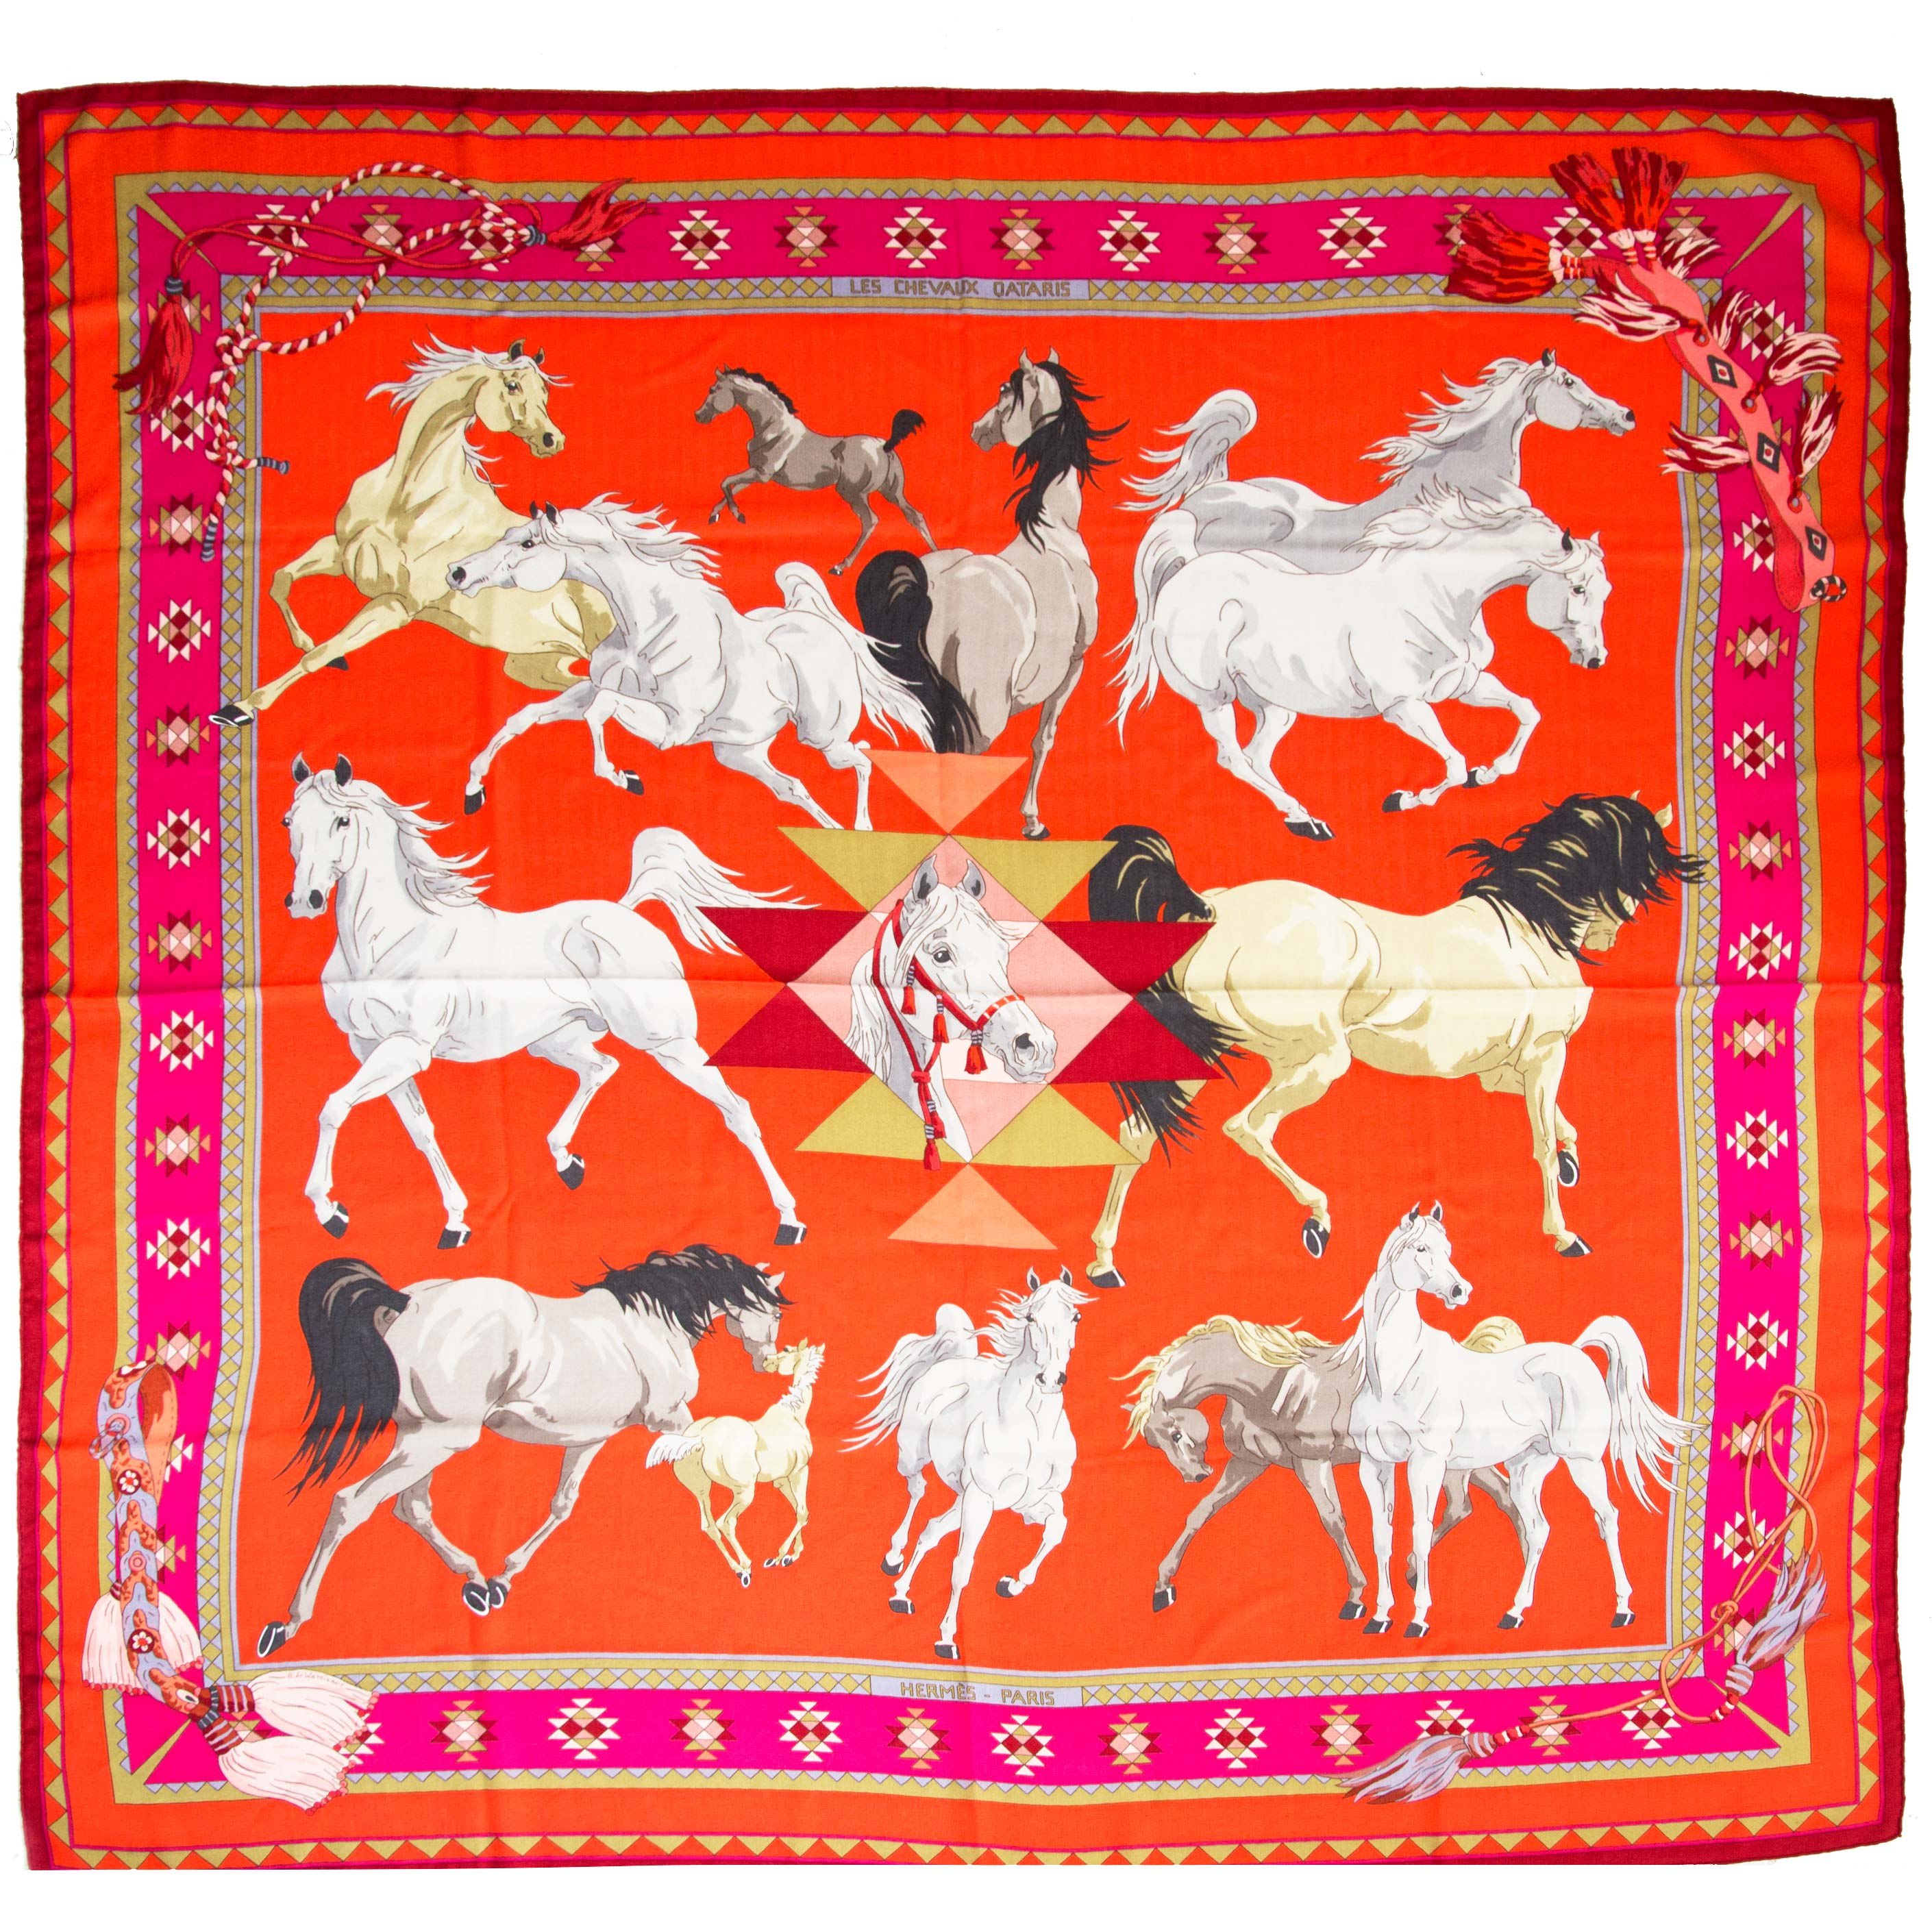 hermes scarf cashmere les chevaux quataris now online at labellov.com for the best price